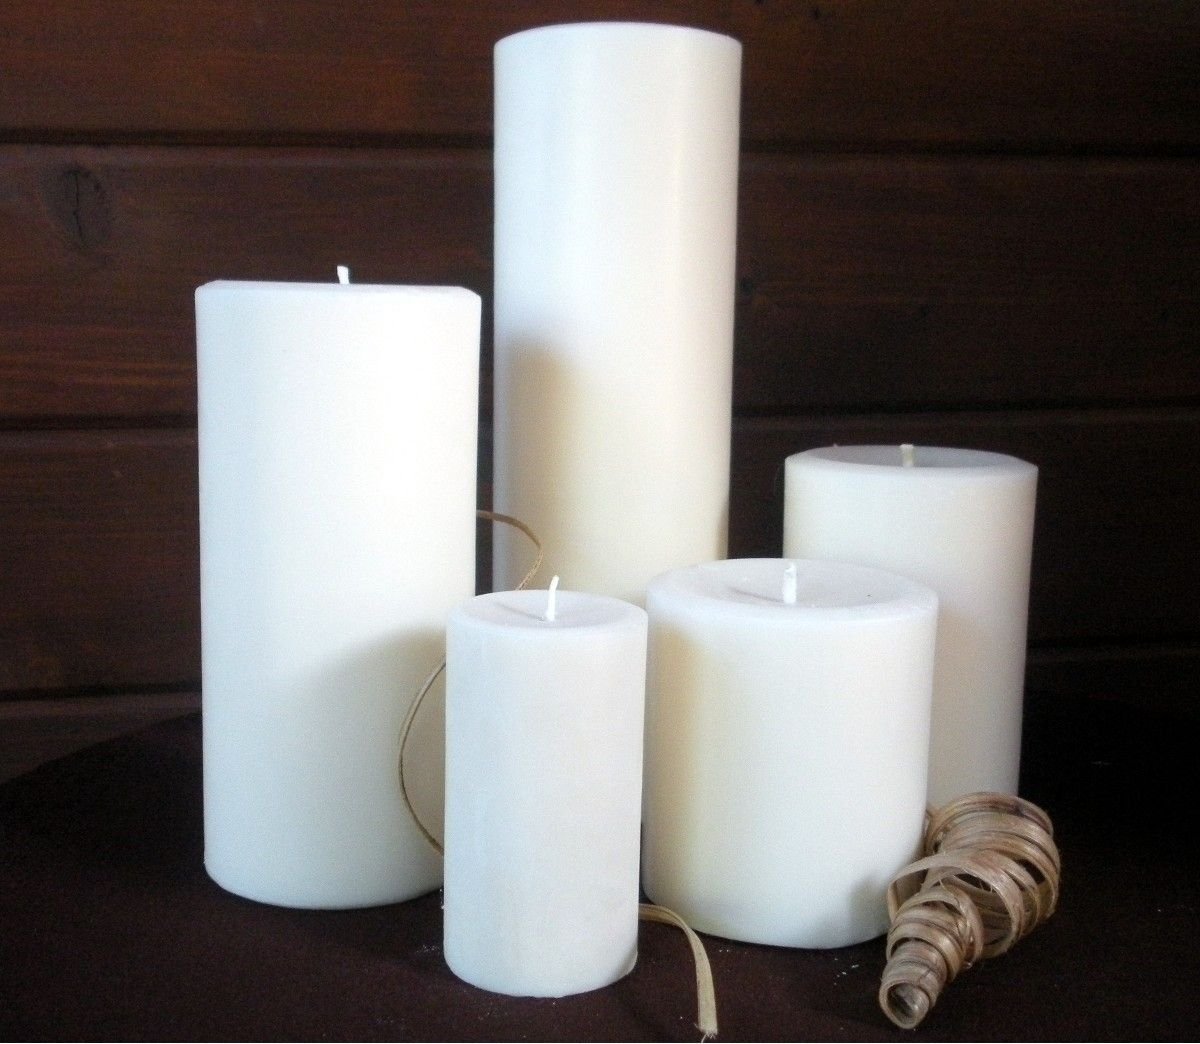 Home Decor Unique Jewelry Hand Crafted Gifts Candles In: Custom Made Pillar Candles By DewOnAPetal Custom Candles